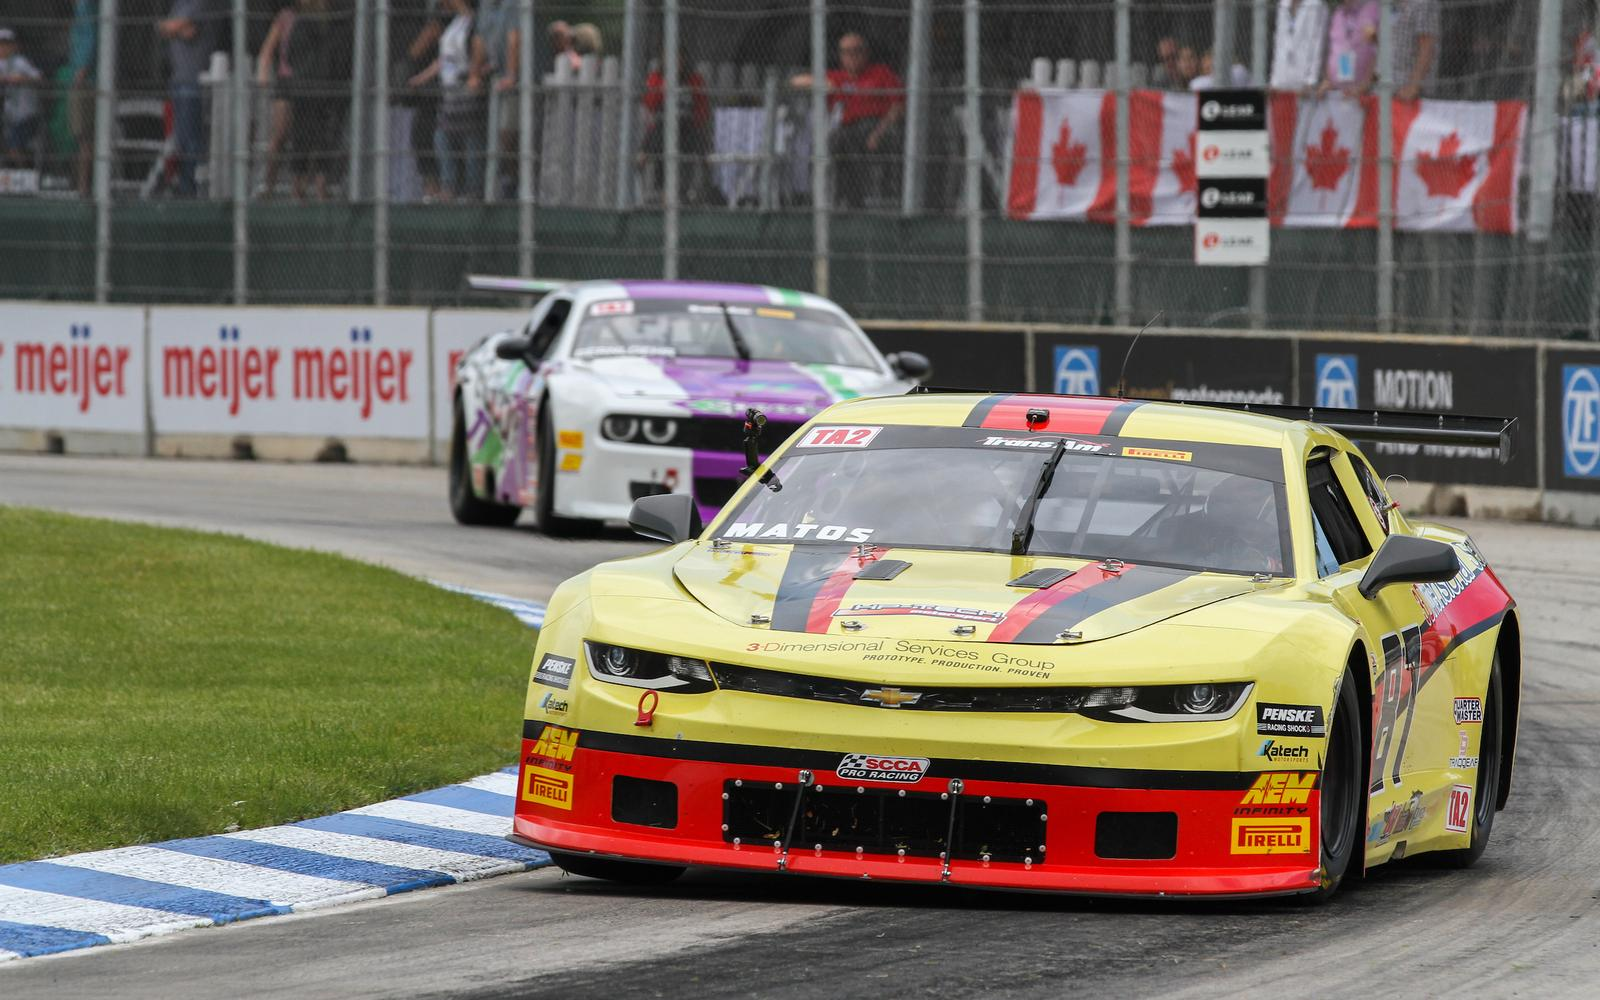 Trans Am Announces 21-Car TA2 Field for 3-Dimensional Races at Detroit Grand Prix